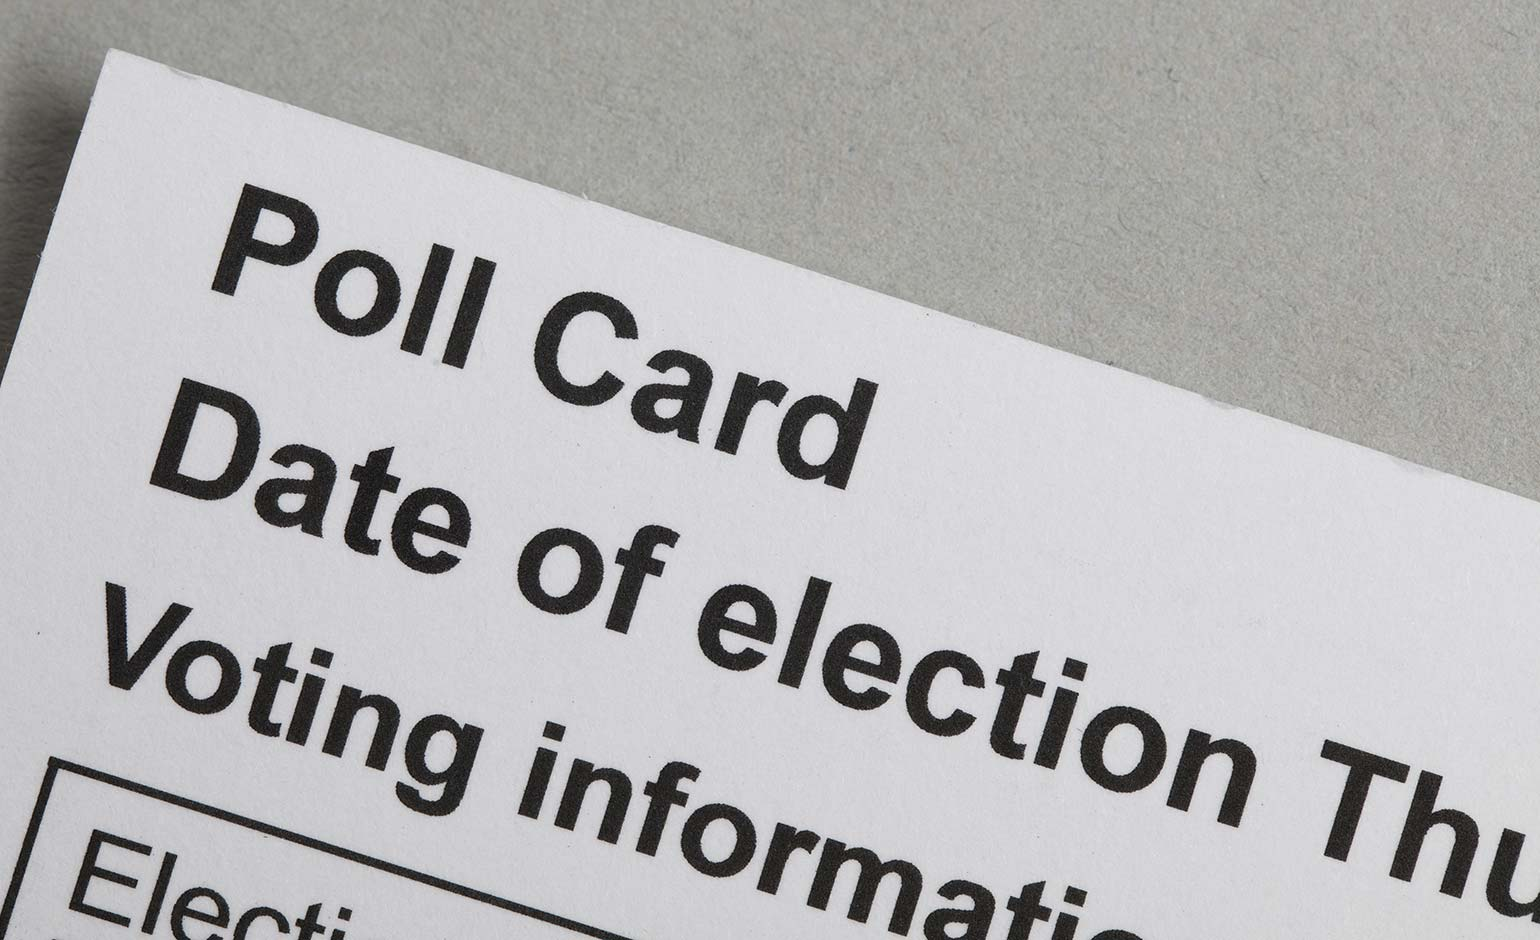 Residents urged to ensure their electoral registration details are up to date